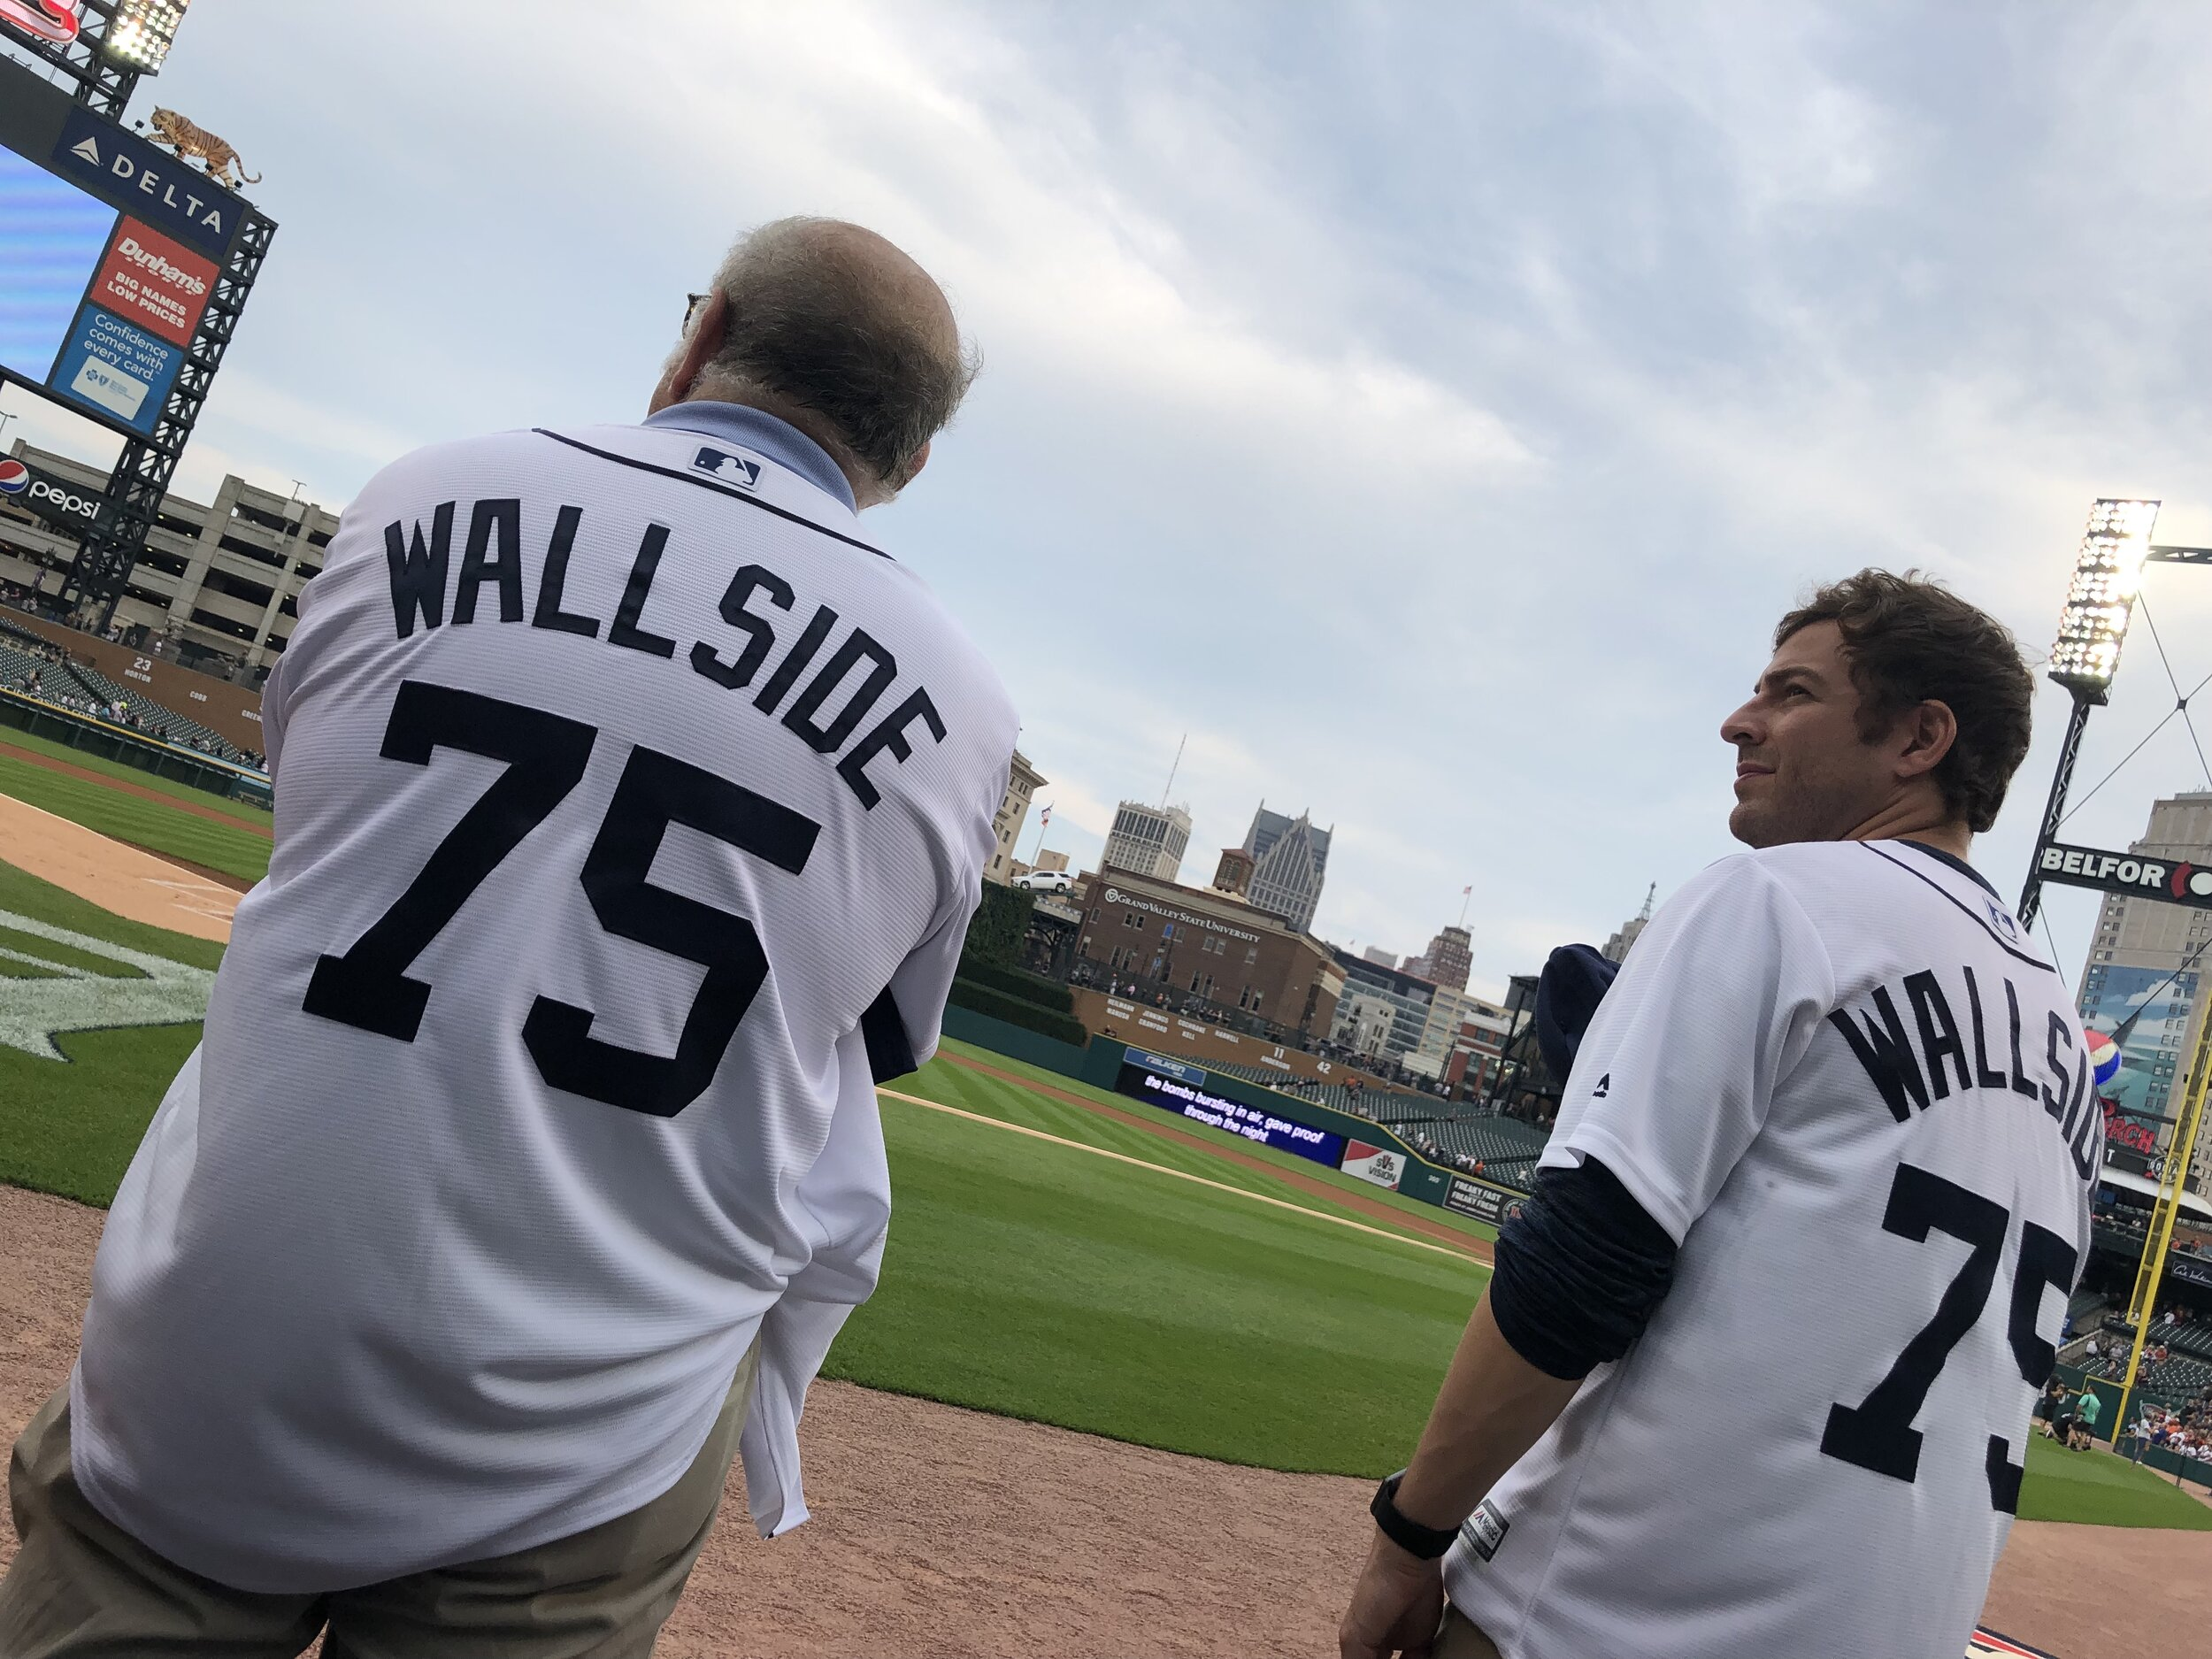 Stanford and Adam Blanck stand on the edge of the field at Comerica Park, just before the start of Tuesday's Detroit Tigers game.